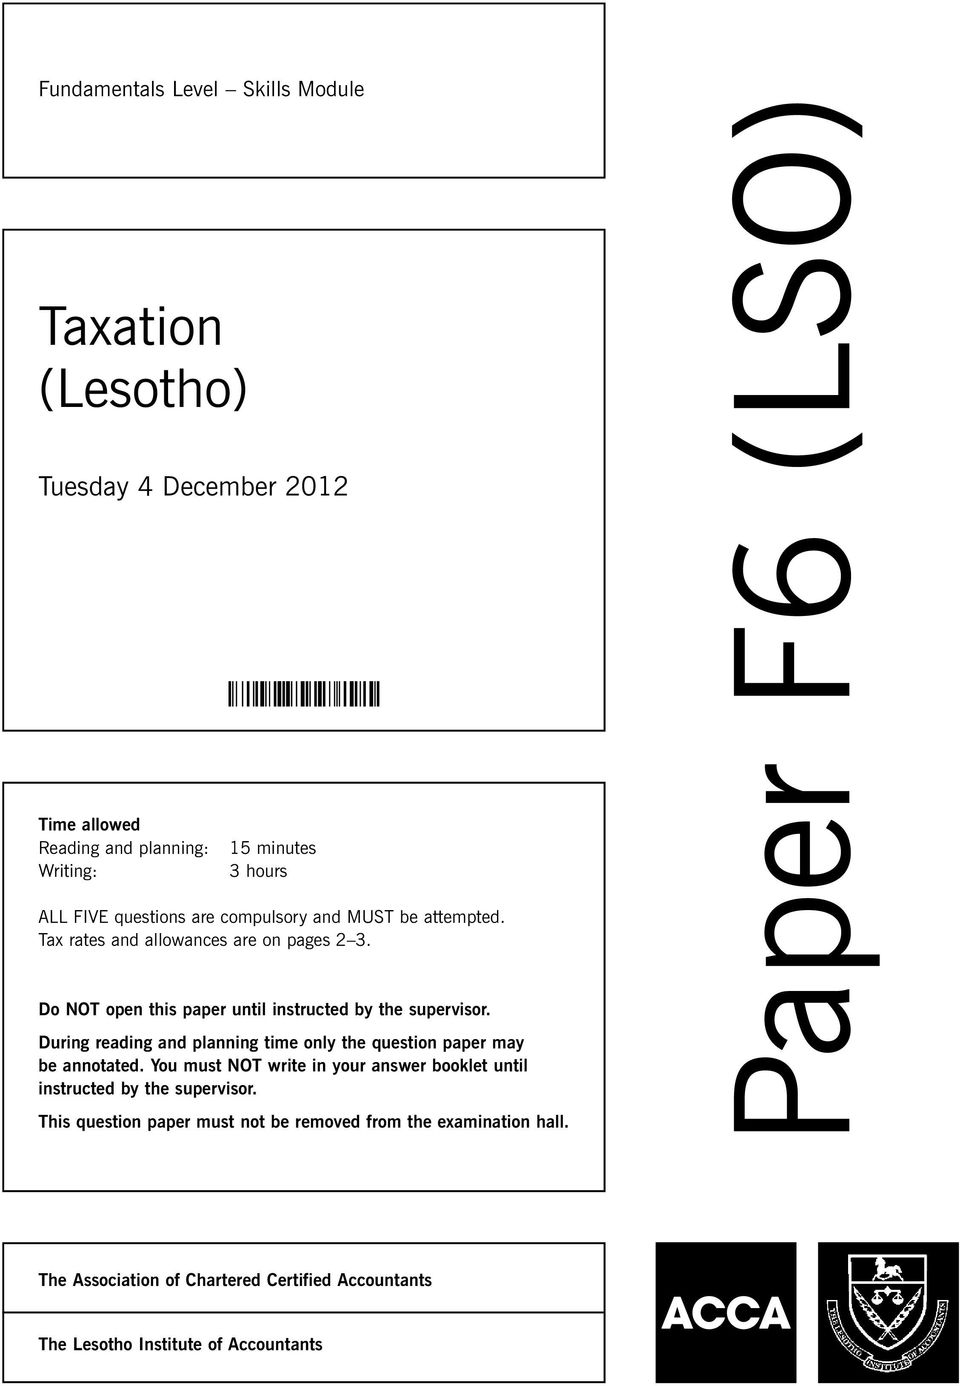 Paper F6 (LSO) Taxation (Lesotho) Tuesday 4 December